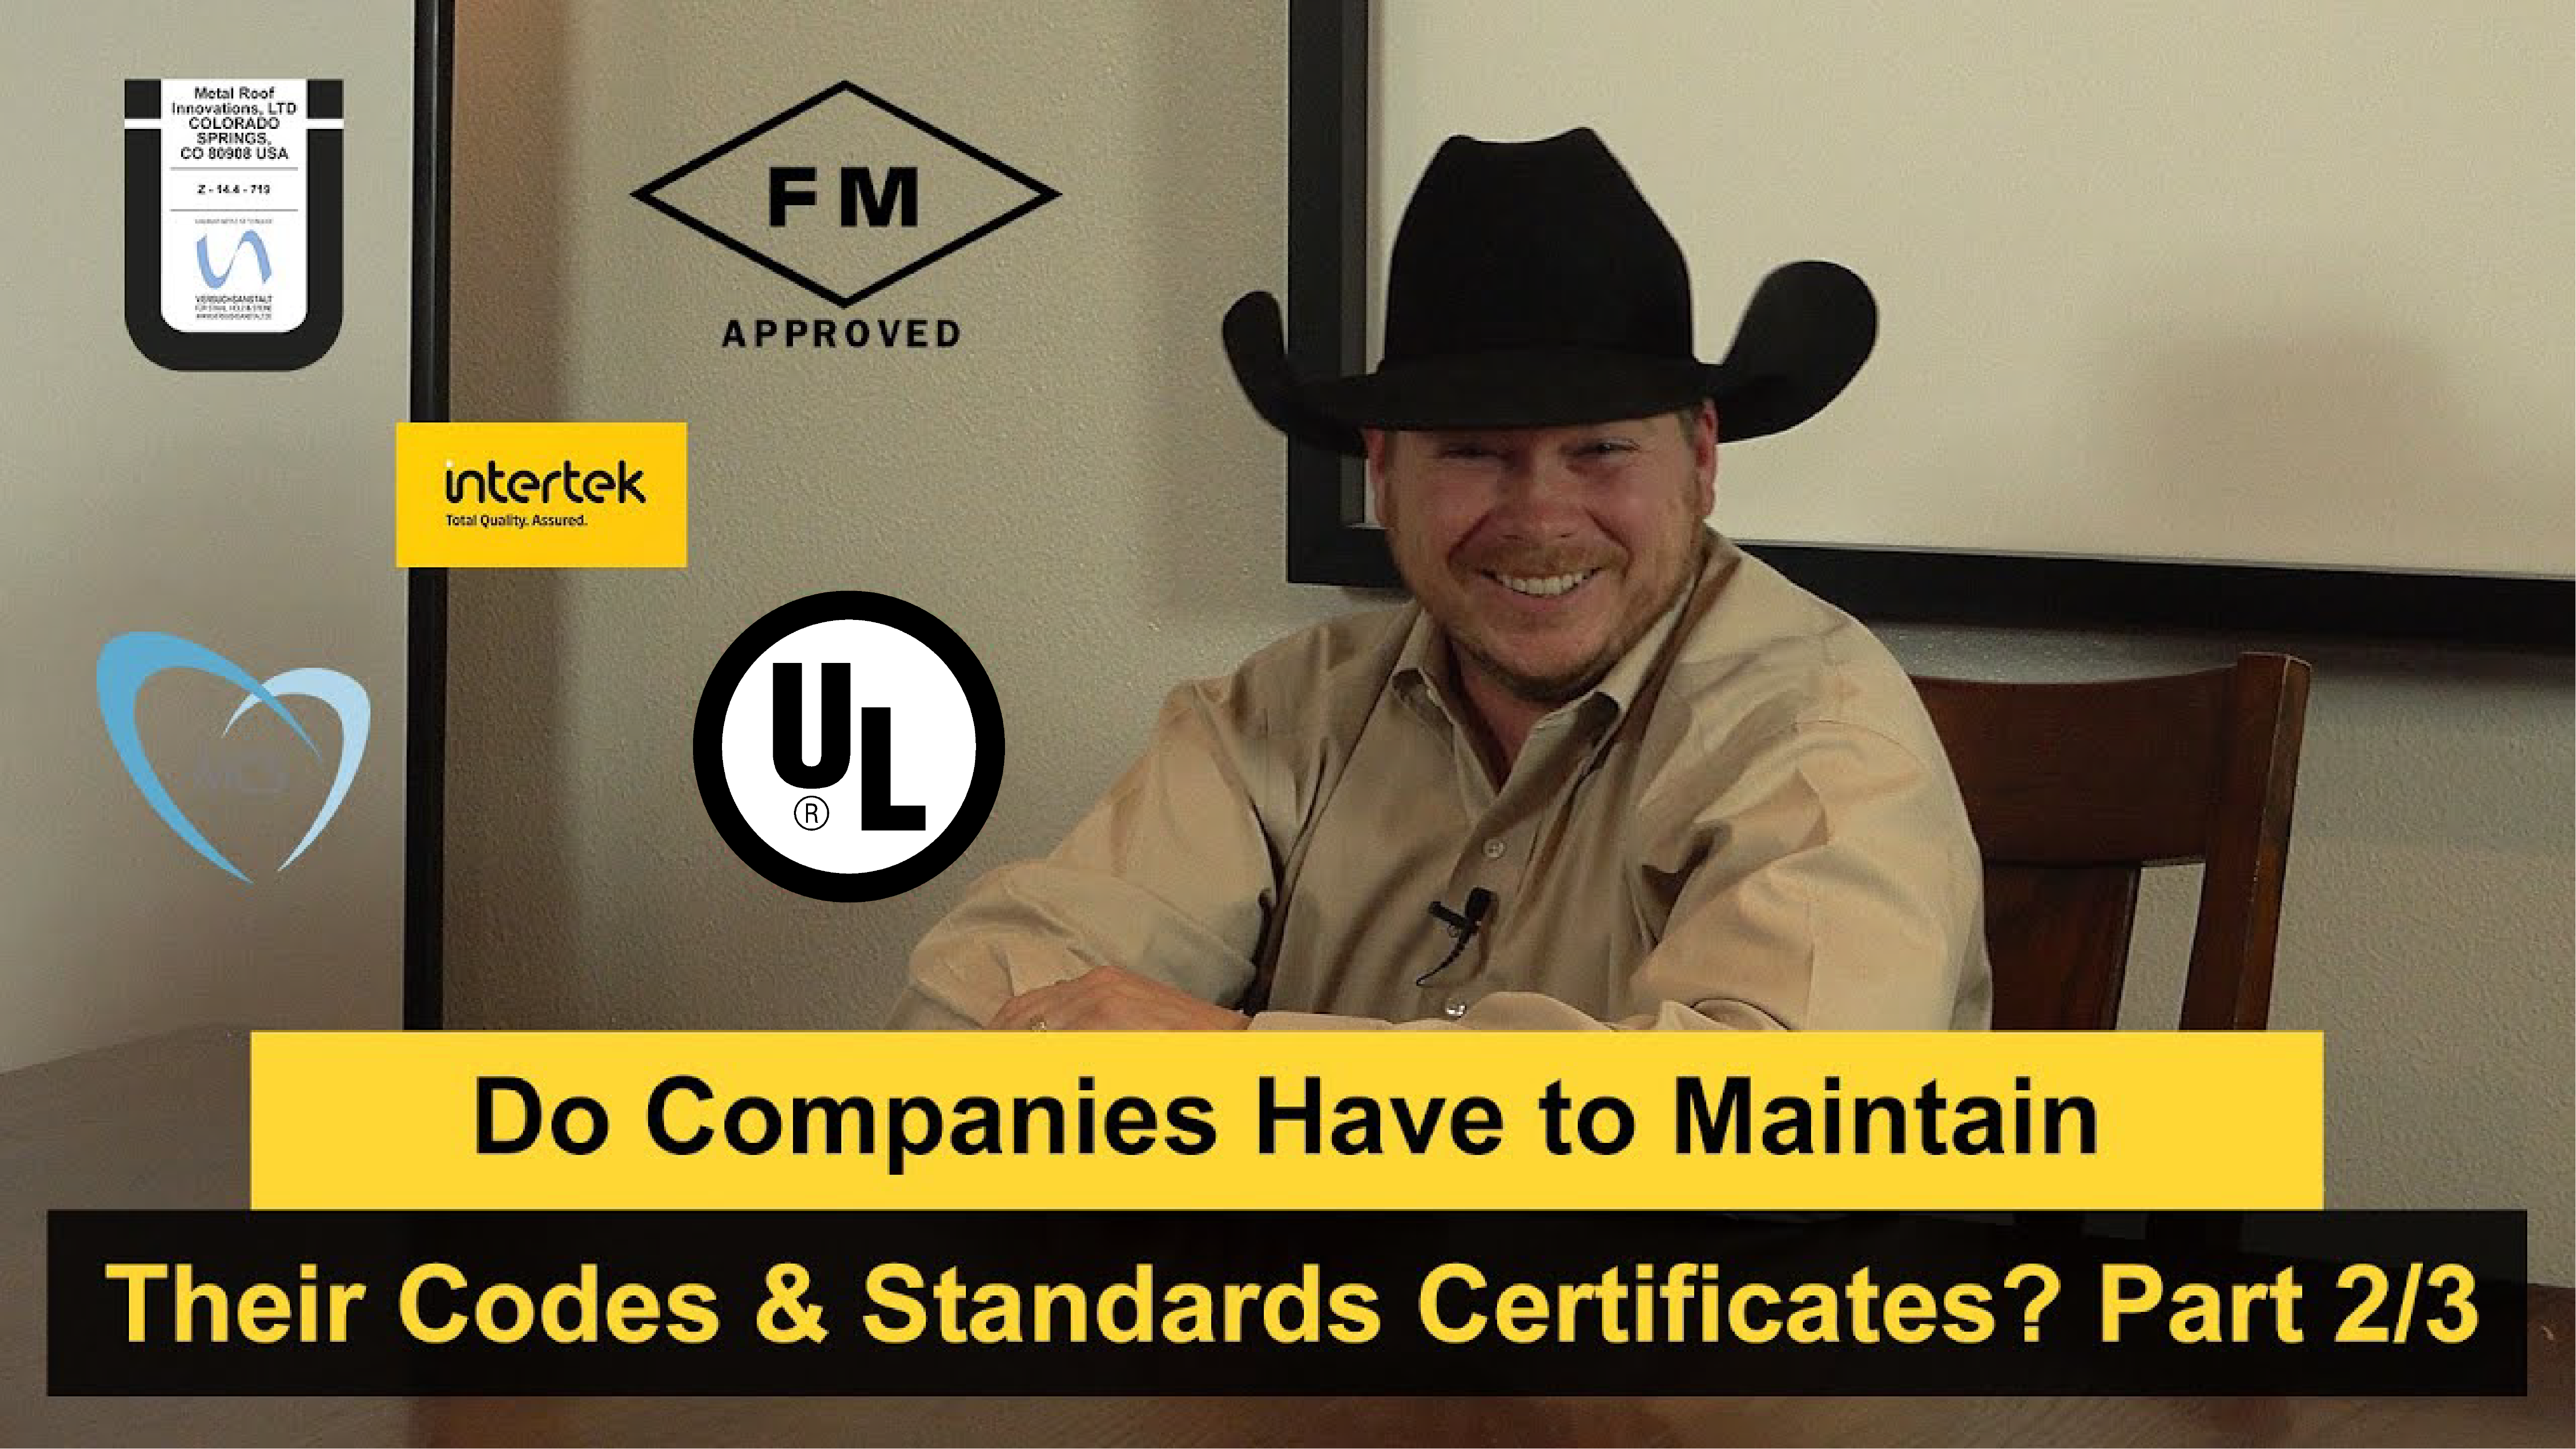 Do Companies Have to Maintain Their Codes & Standards Certificates?